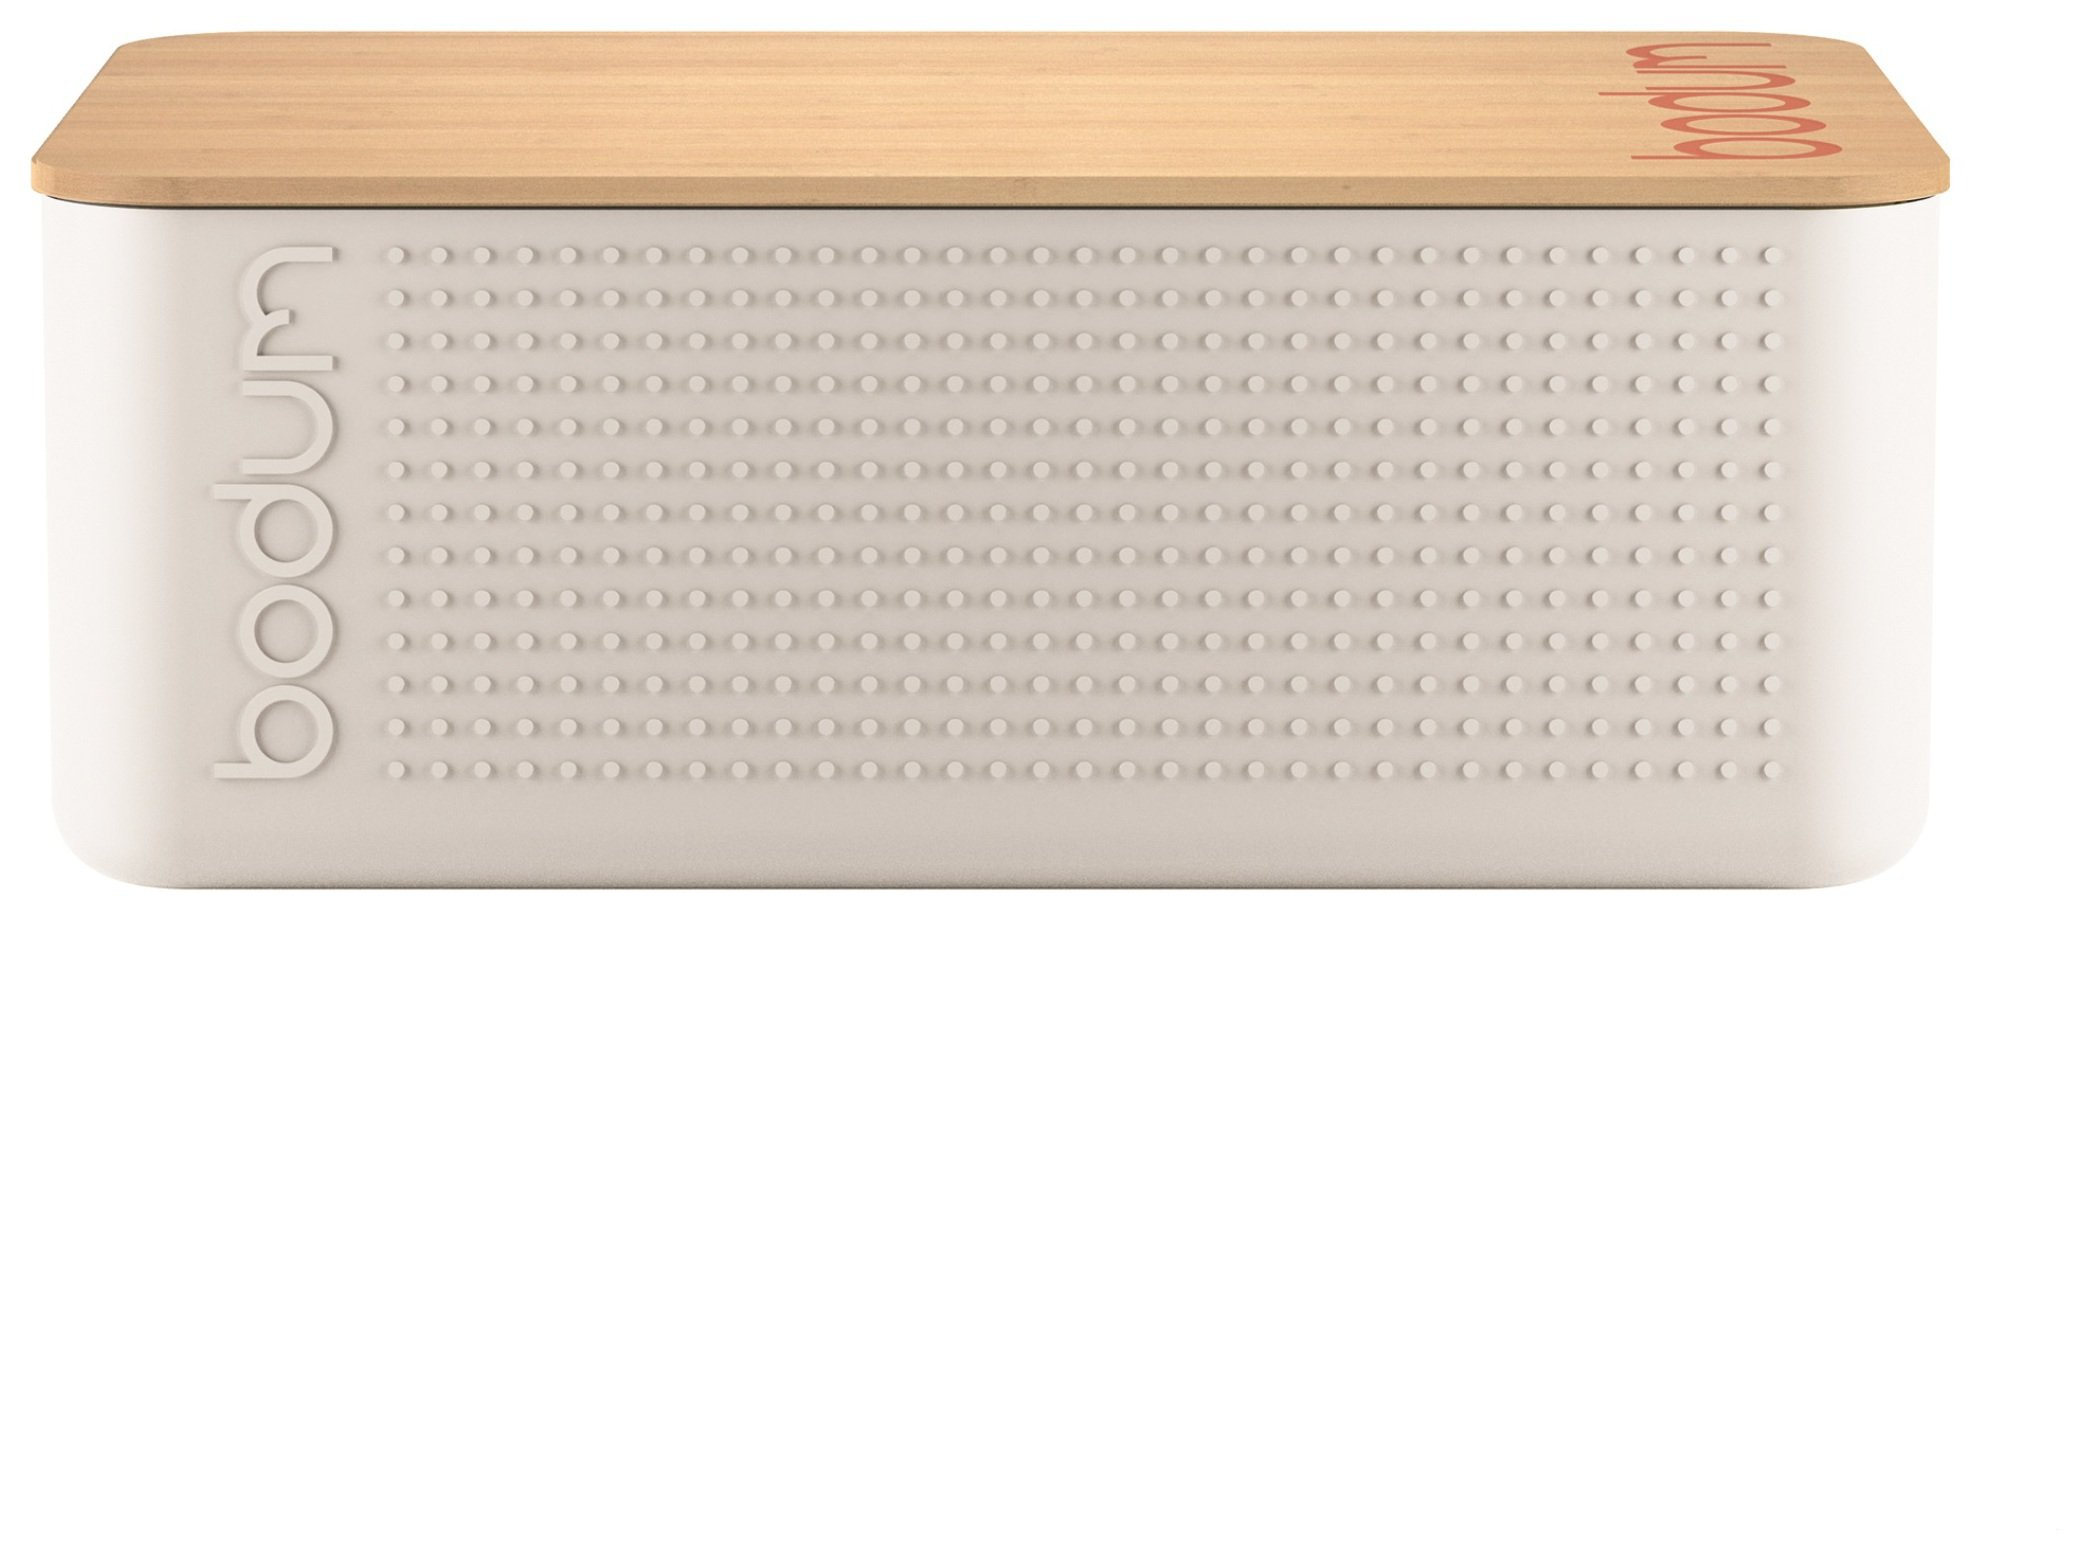 Image of Bodum Bistro Bread Box - White